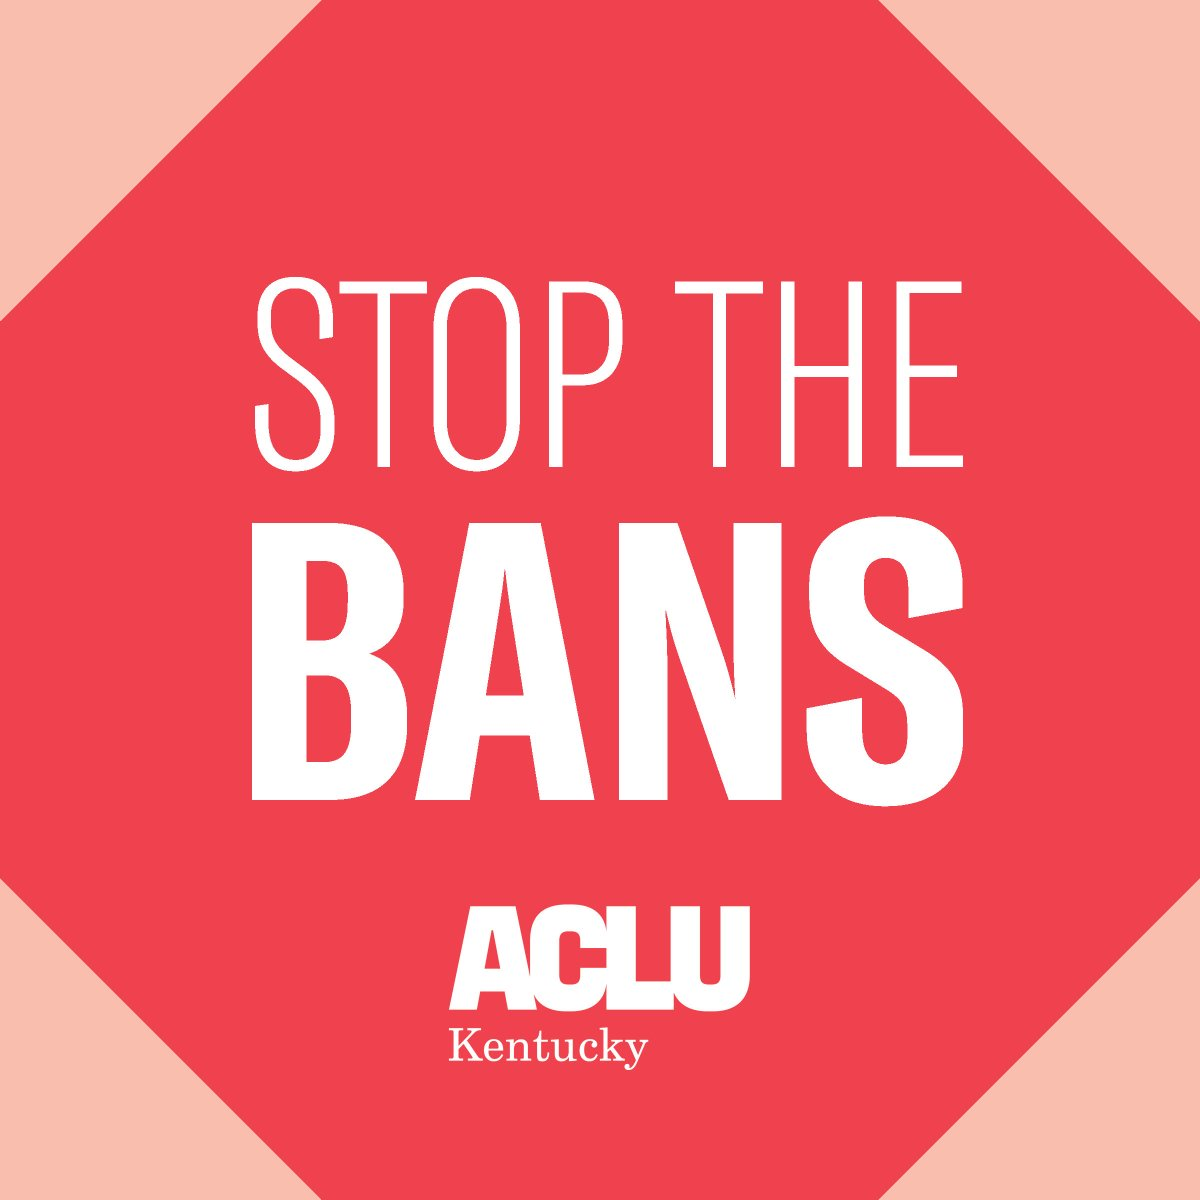 """📣 Tuesday is also National """"Stop the Bans"""" Day of Action for Abortion Access. We'll be attending the Louisville action hosted by @PPAdvocatesINKY at Noon at the Federal Building.  Details: https://www.facebook.com/events/677906455978490/… #stopthebans"""